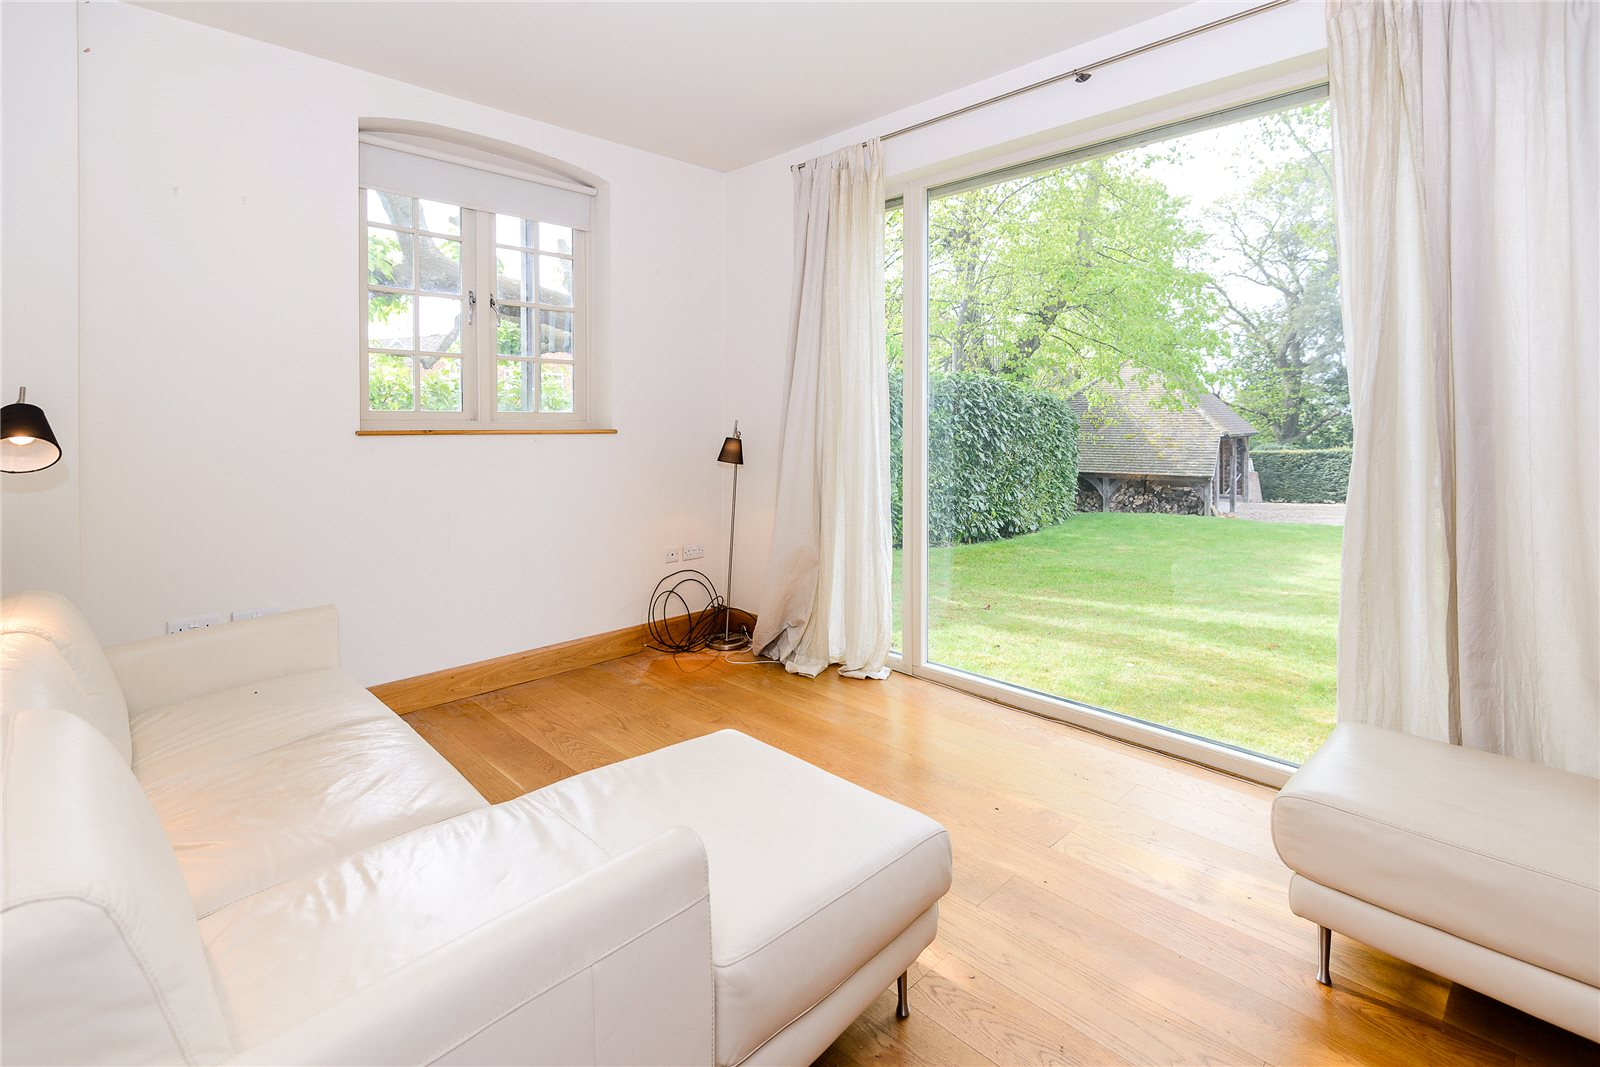 Additional photo for property listing at Rogers Lane, Stoke Poges, Buckinghamshire, SL2 Stoke Poges, Inghilterra